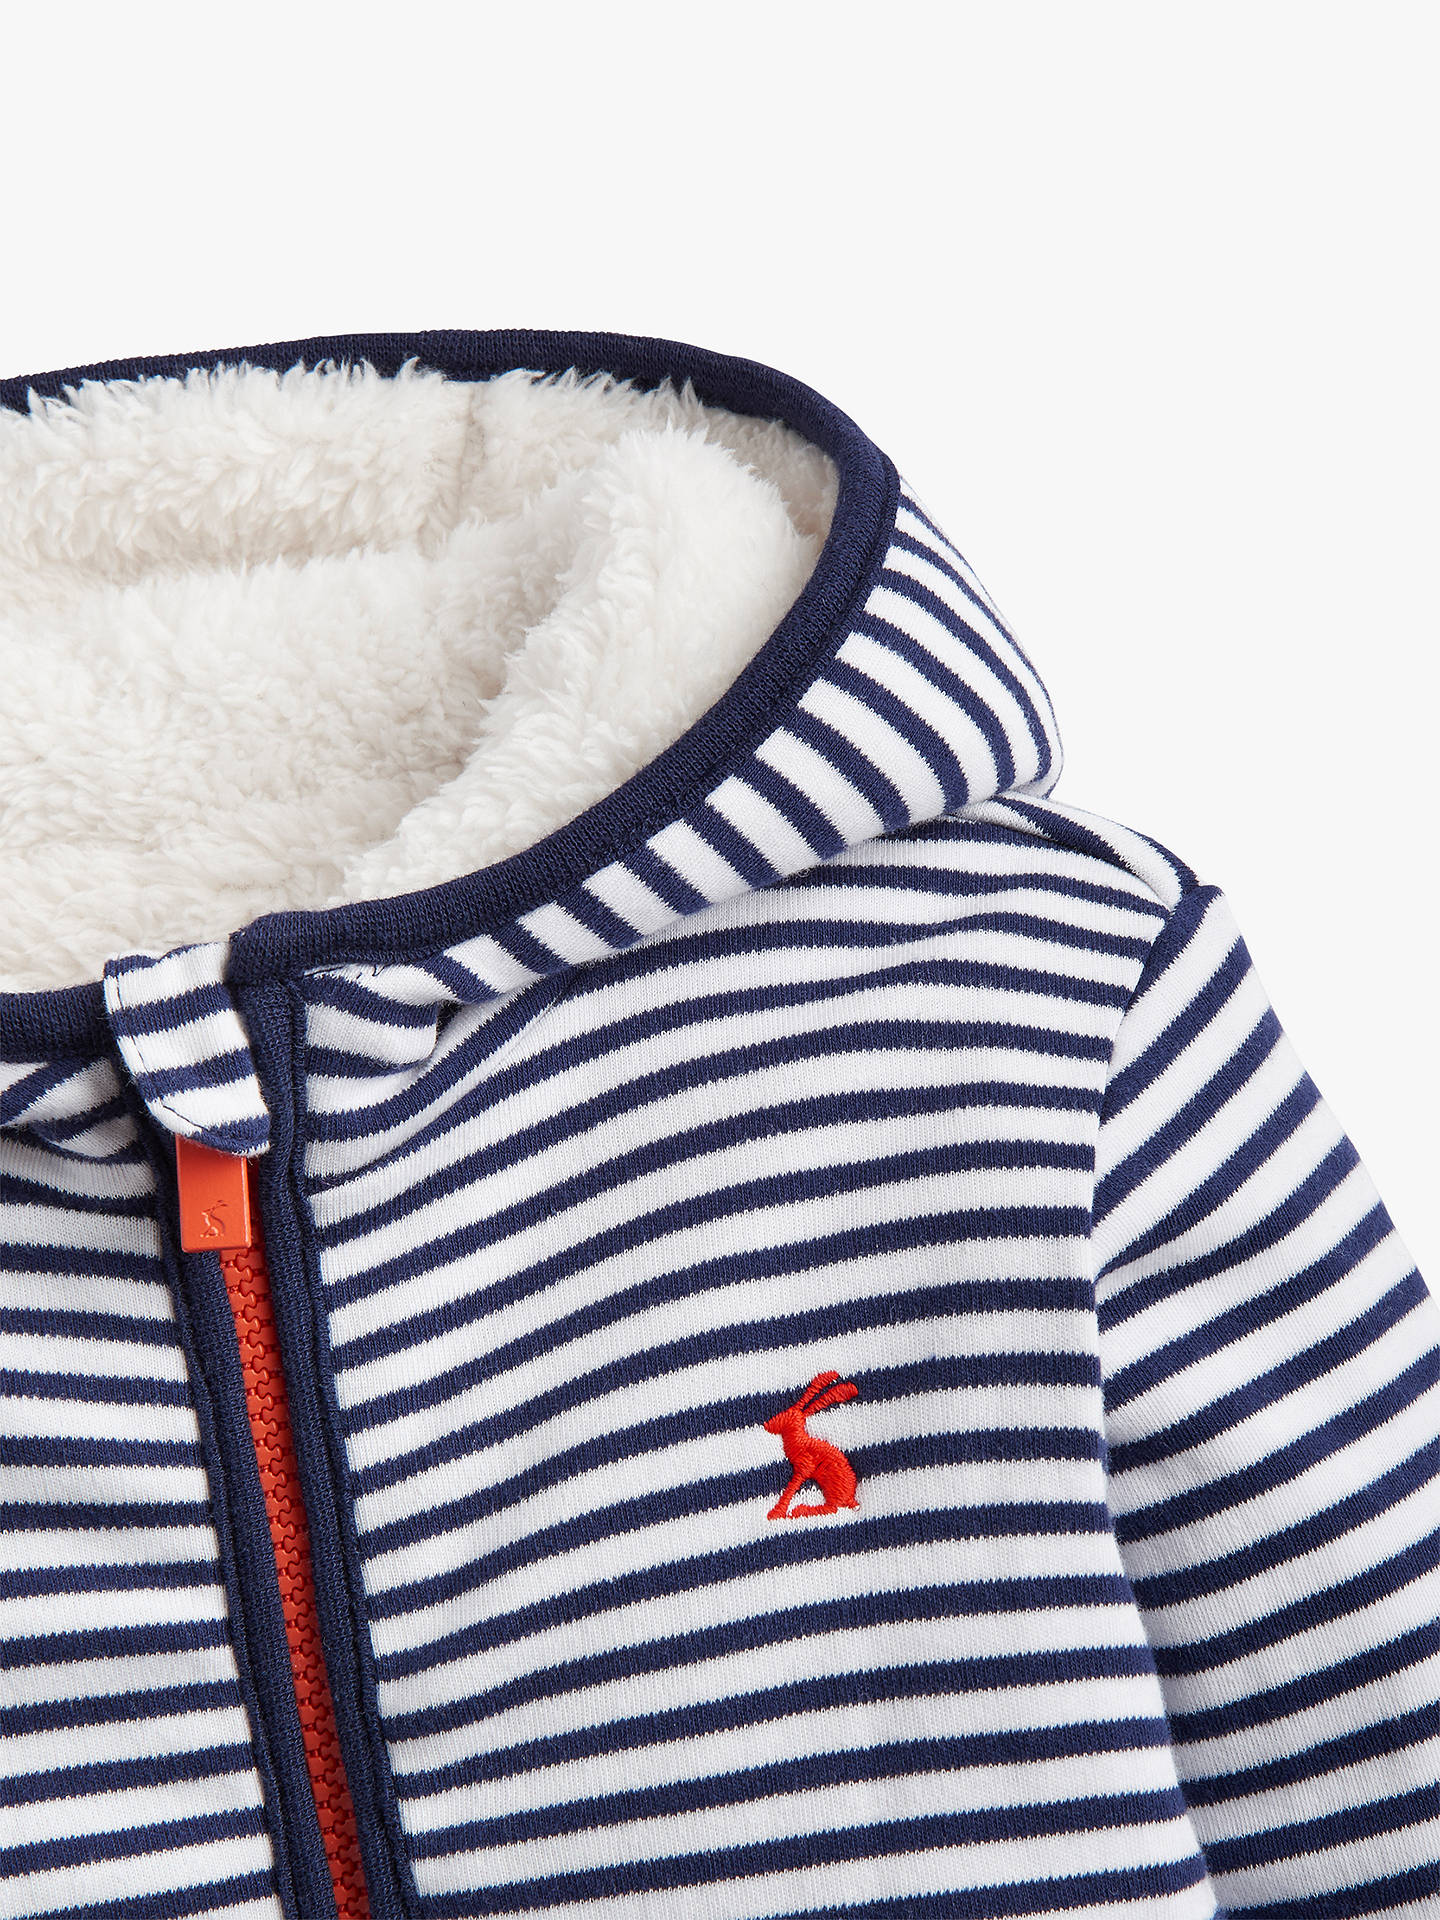 BuyBaby Joule James Stripe Reversible Jacket, White/Navy, 0-3 months Online at johnlewis.com